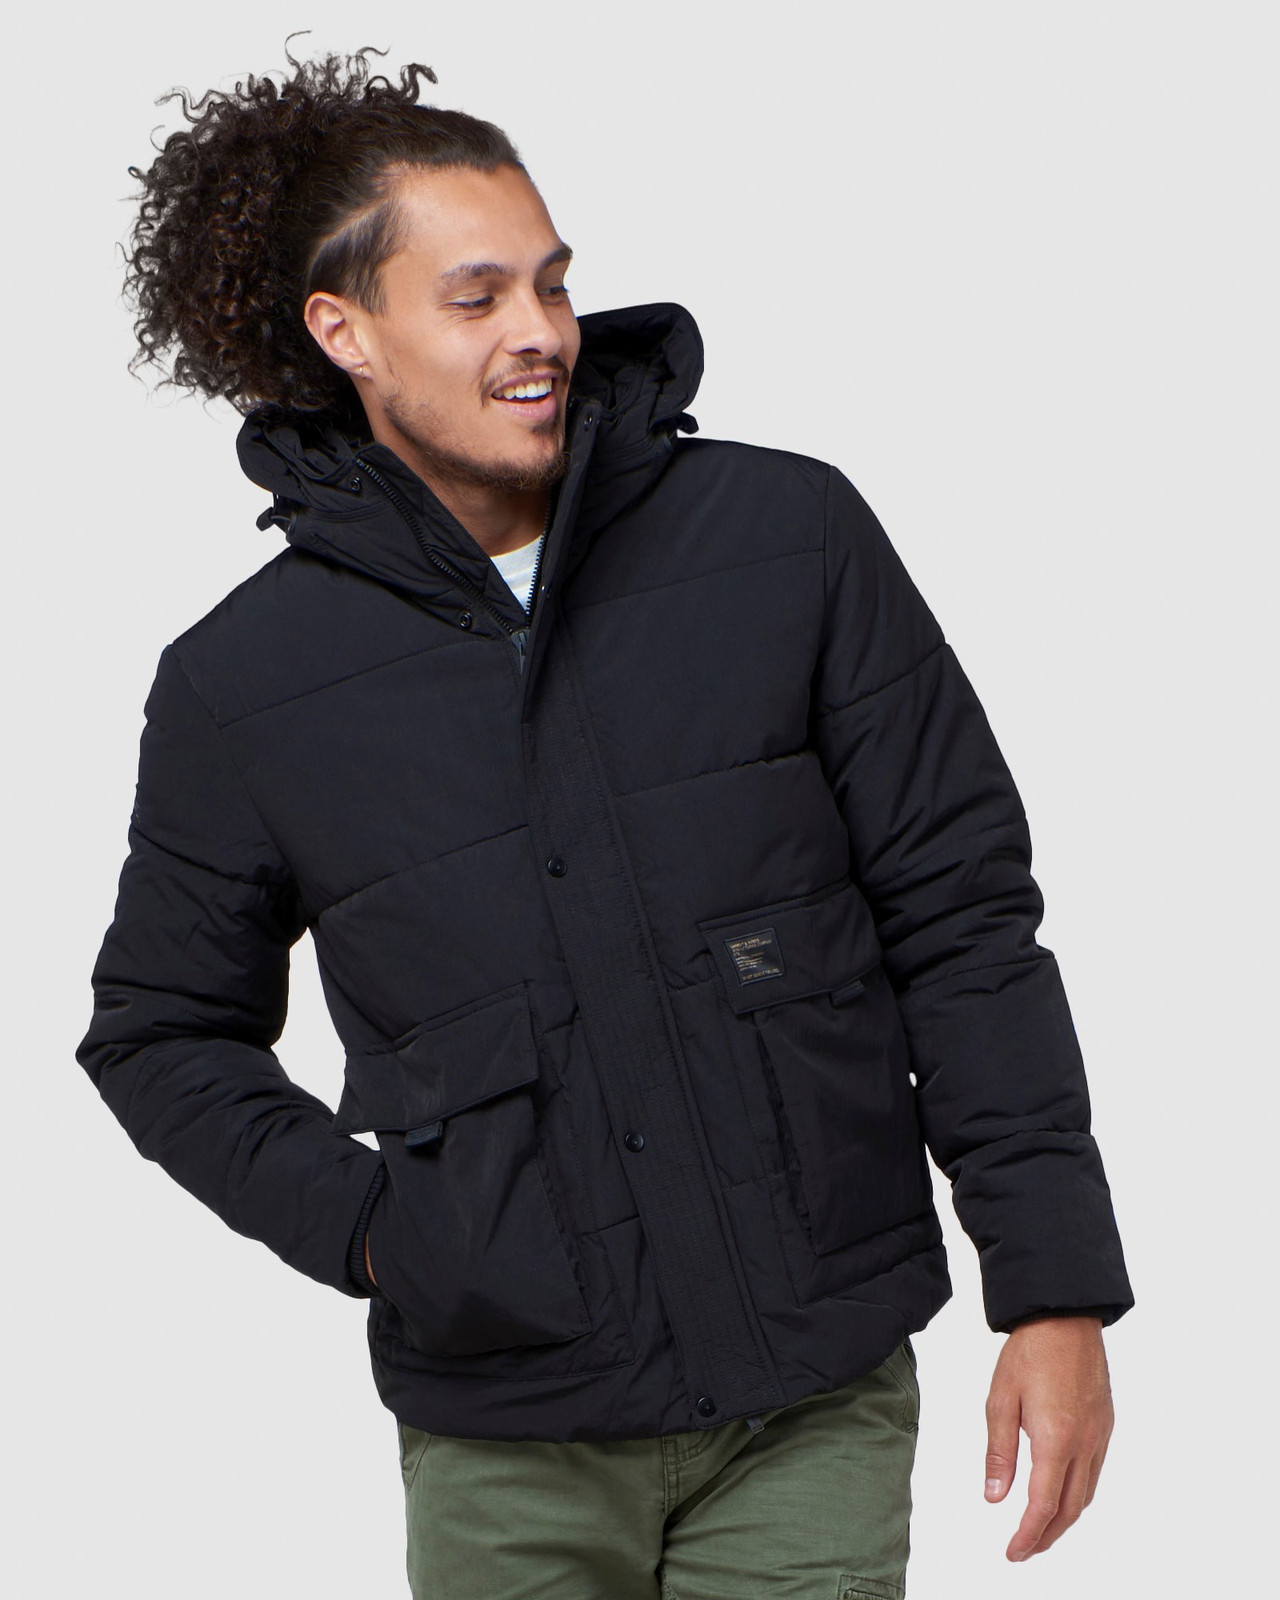 Superdry Mens PIVOT JACKET Black Puffer Jackets 0